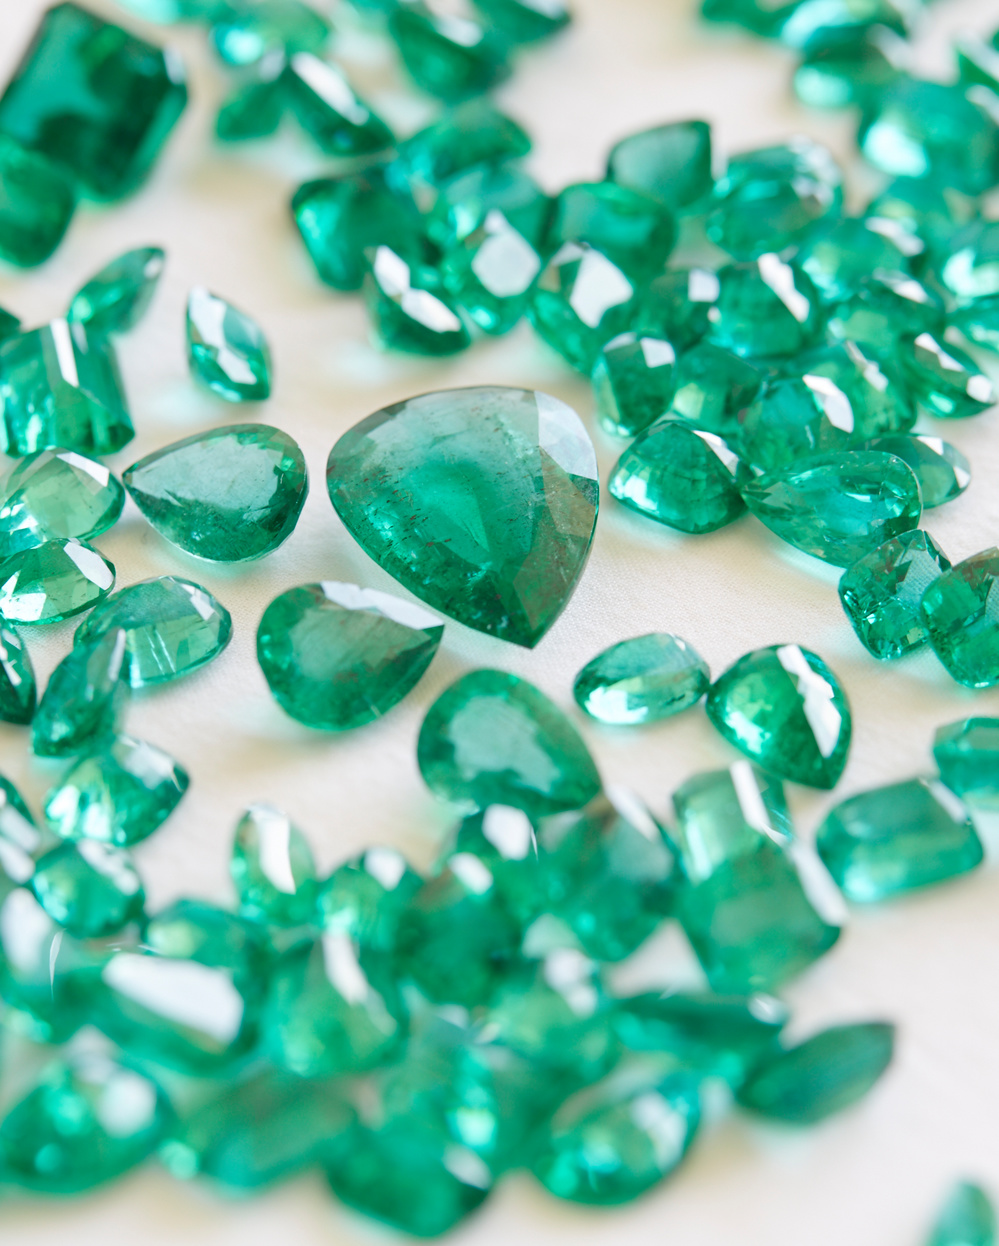 A close up of emerald stones laid out on a table.